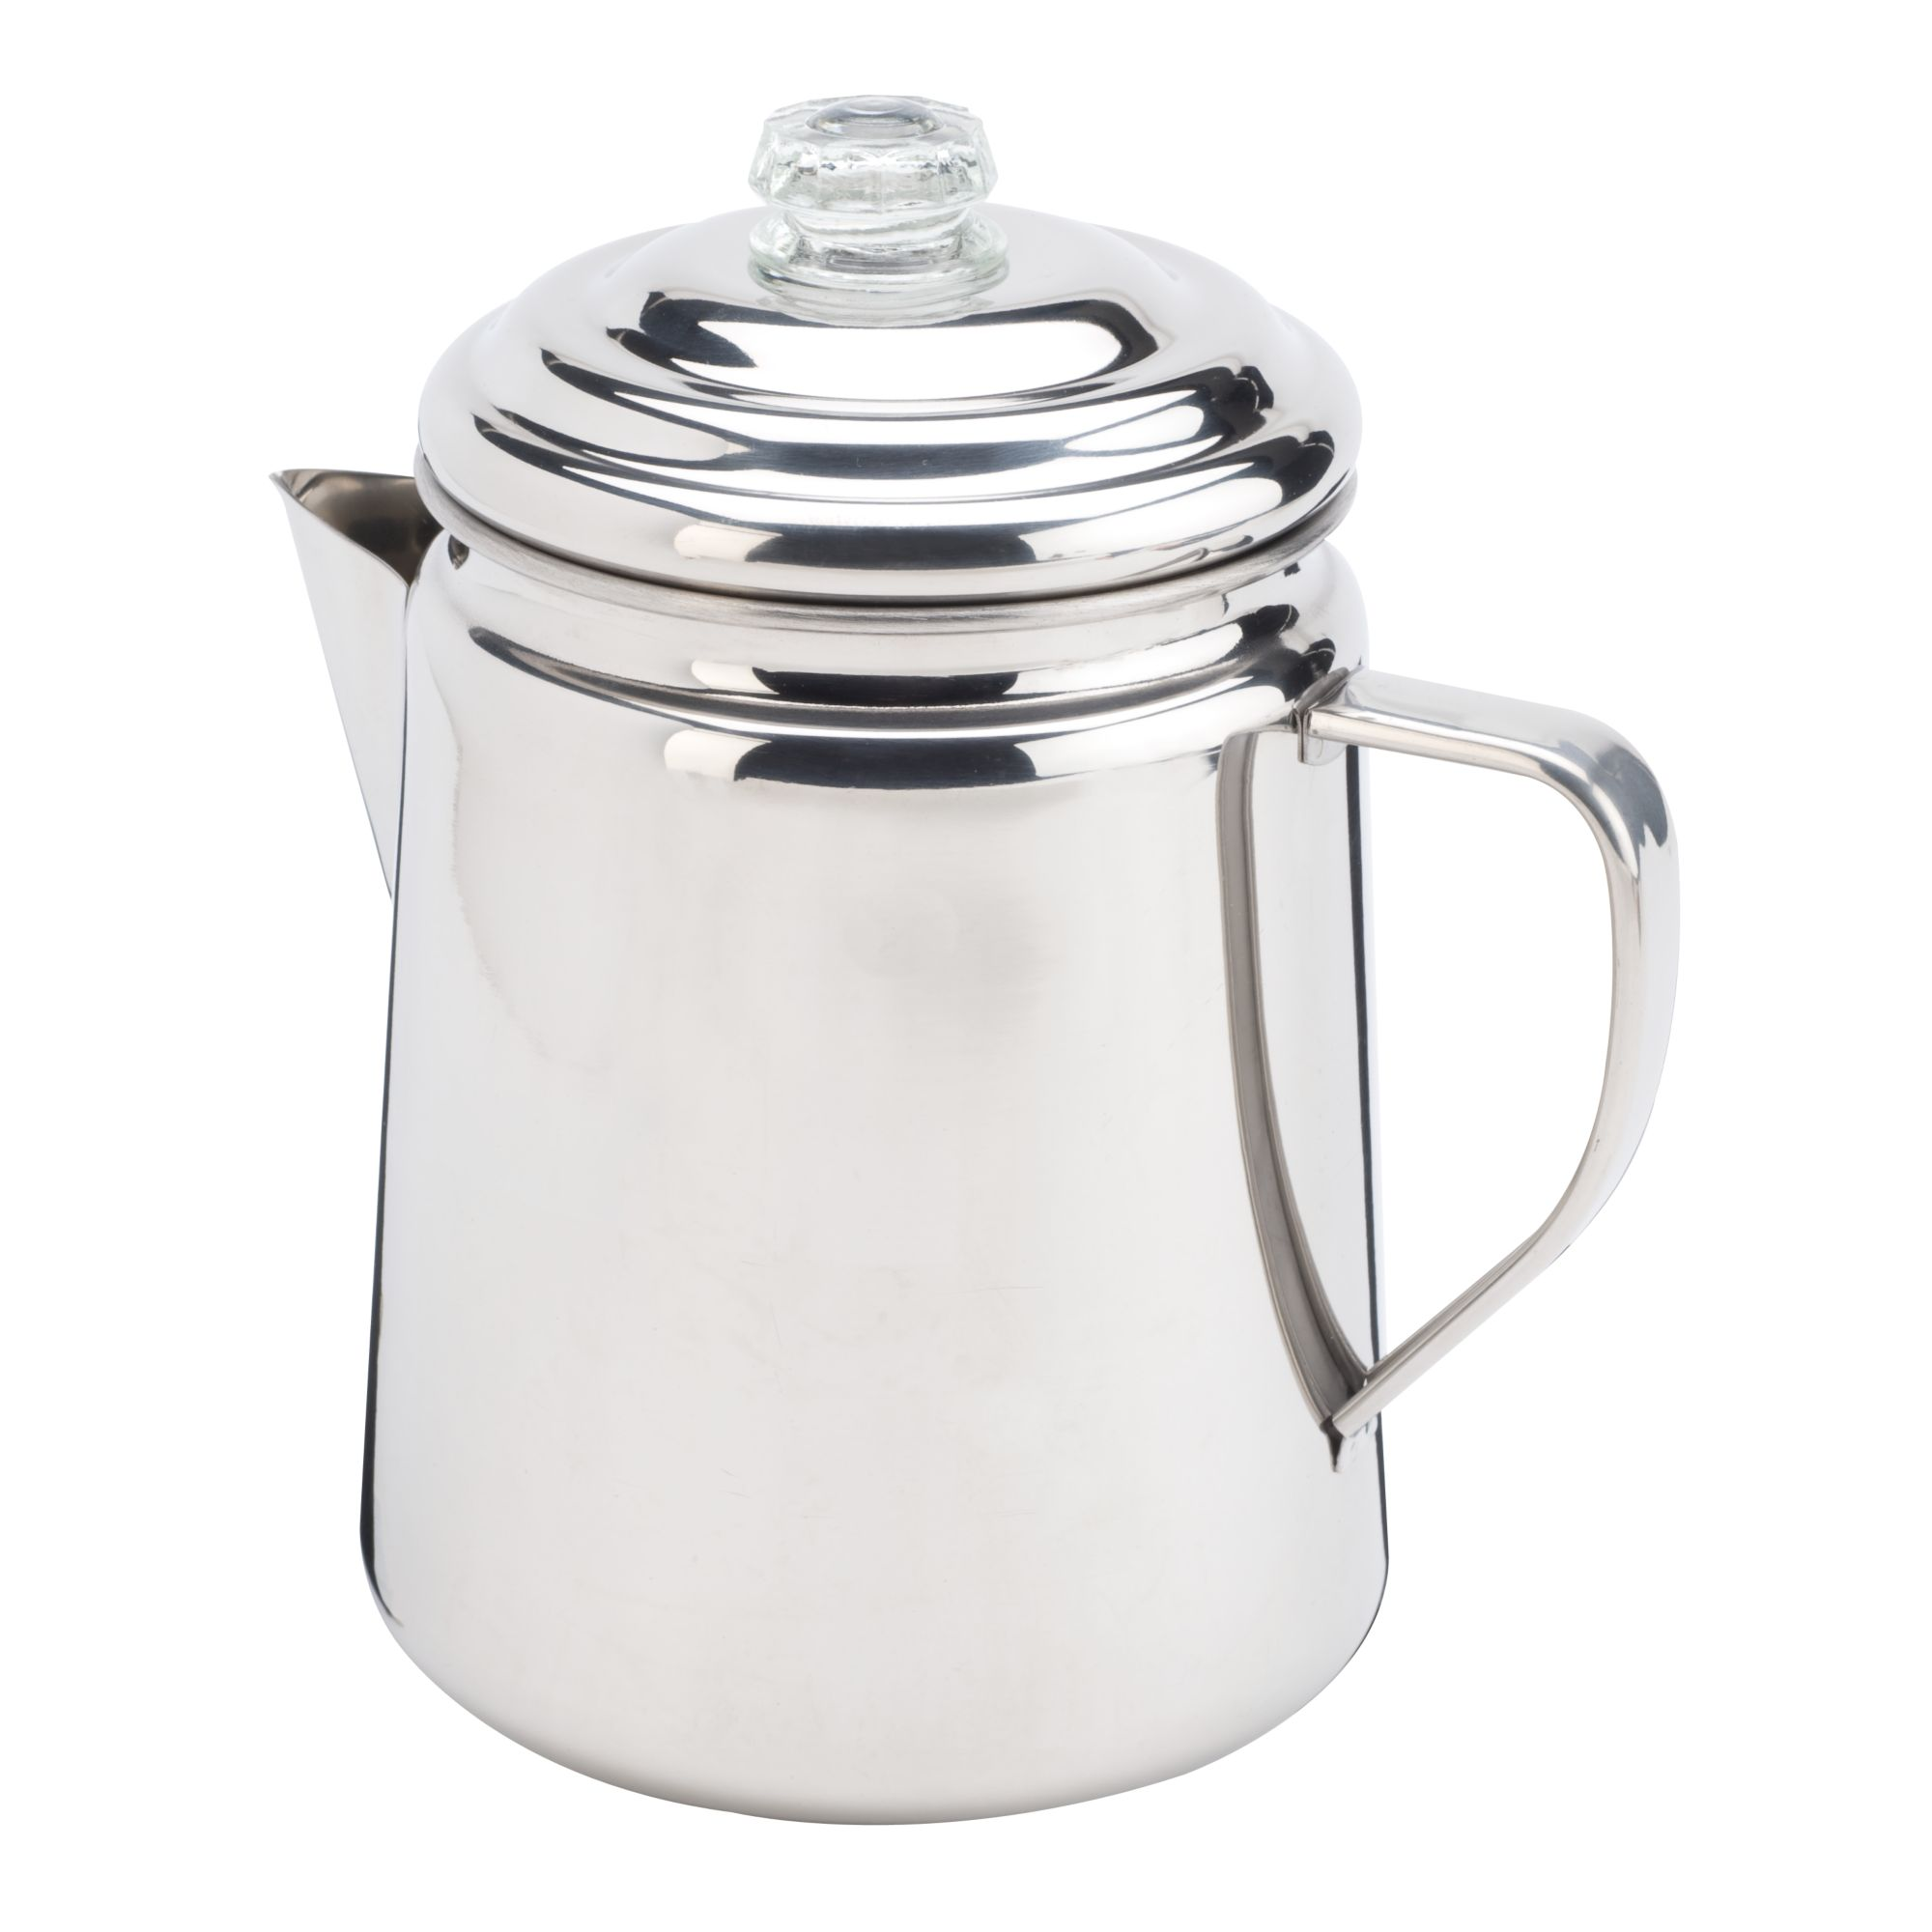 Coleman 12-Cup Stainless Steel Percolator